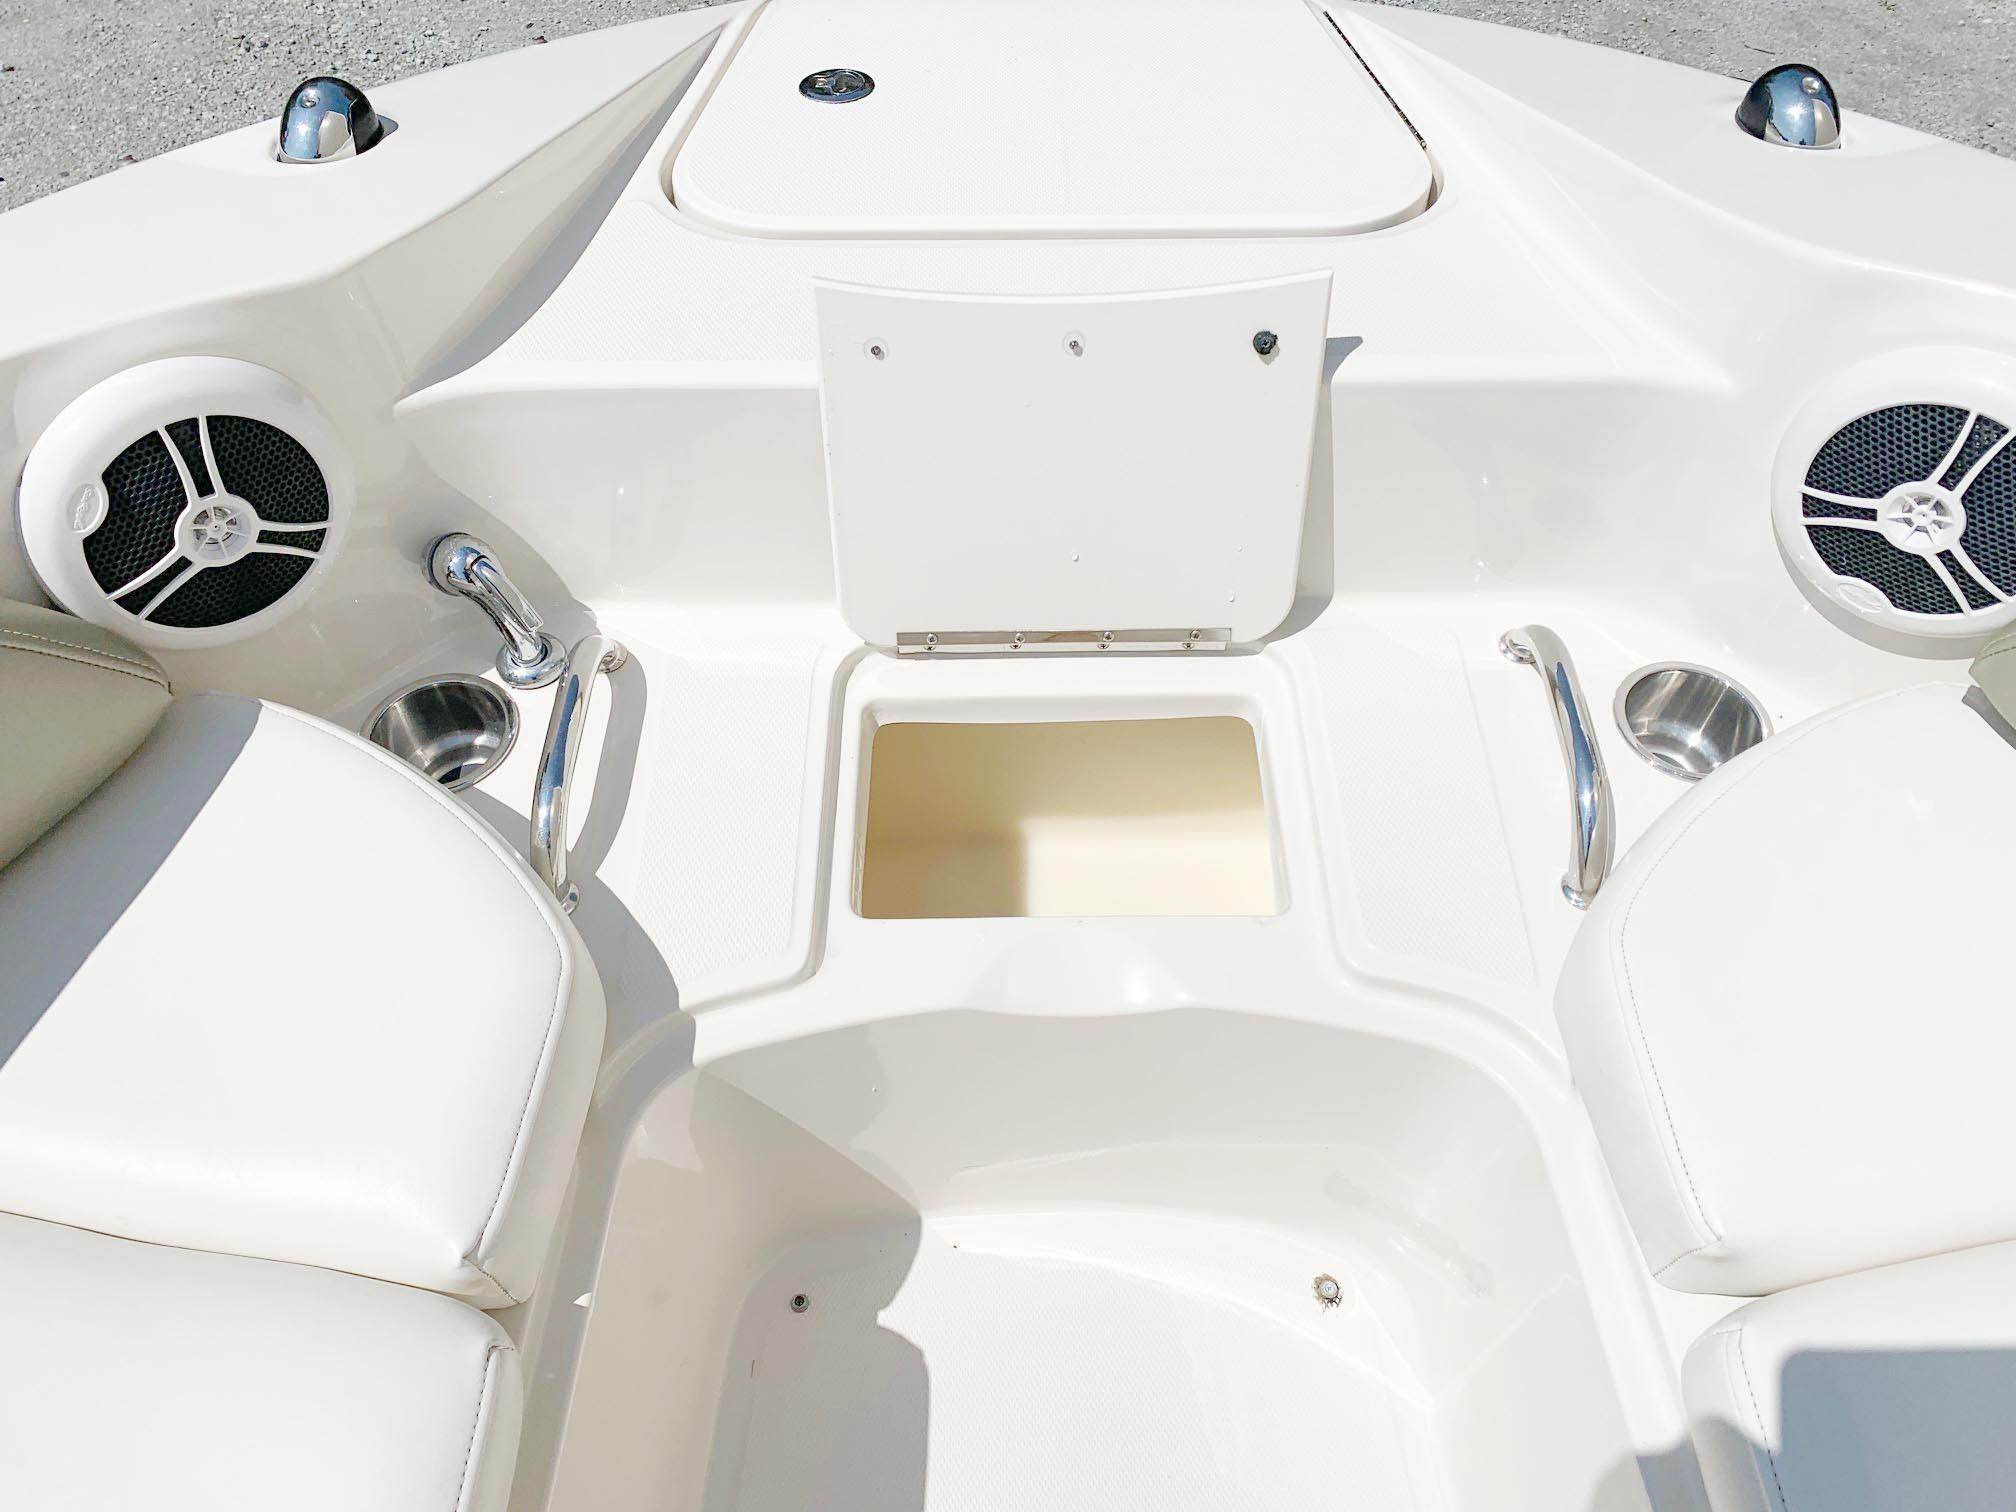 Sea Ray 260 Sundeck - Cooler - Speakers in Bow